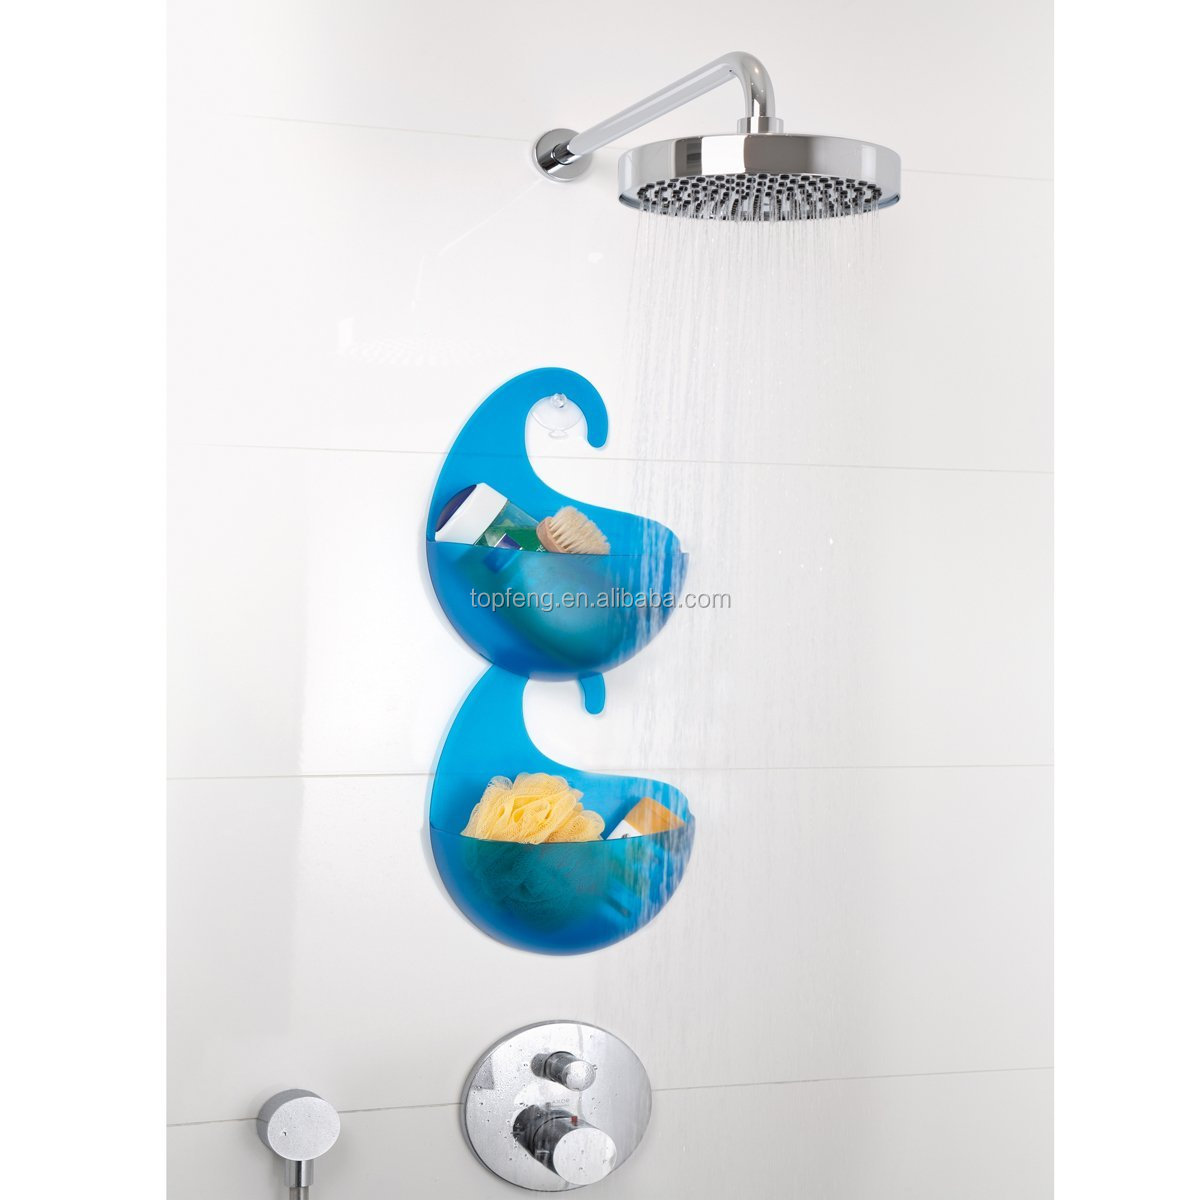 Plastic Bathroom Shower Caddy With Hook/ Plastic Bathing Storage Box With  Hook/Hanging Bathroom